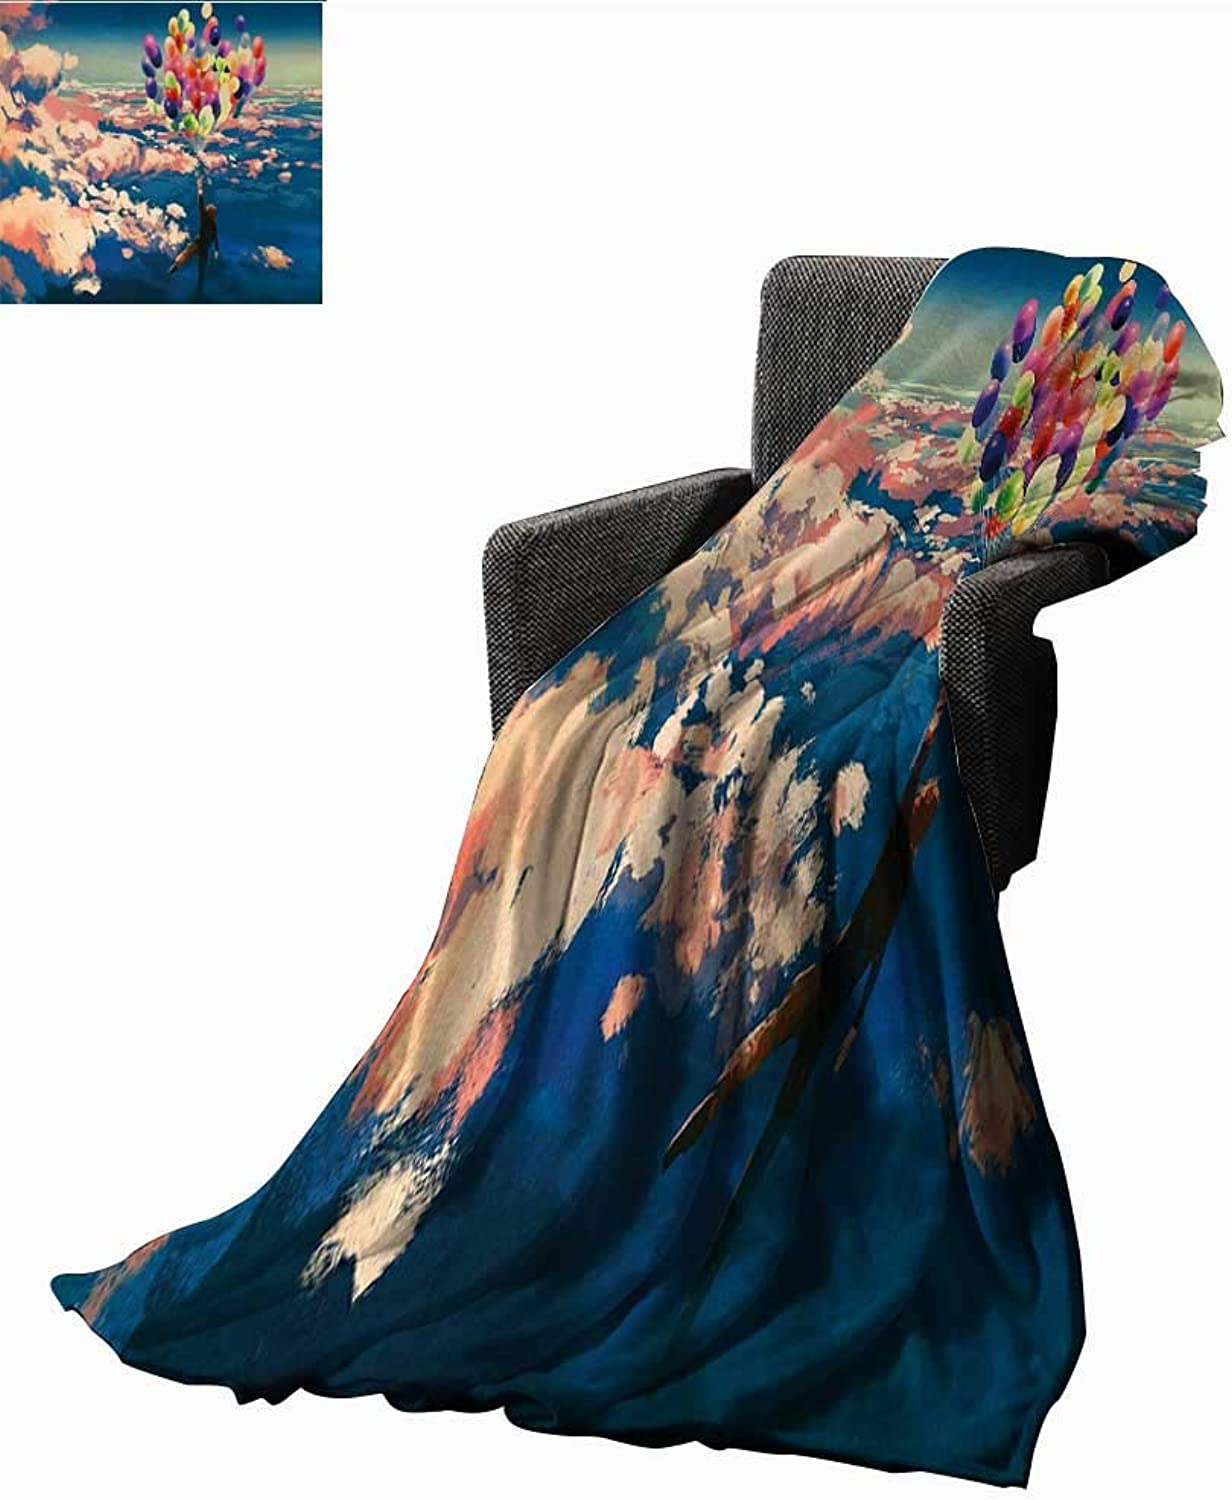 WinfreyDecor Adventure Weave Pattern Extra Long Blanket Man Flying with colorful Balloons in The Sky on Clouds Miracle Paint Print,Super Soft and Comfortable,Suitable for Sofas,Chairs,beds